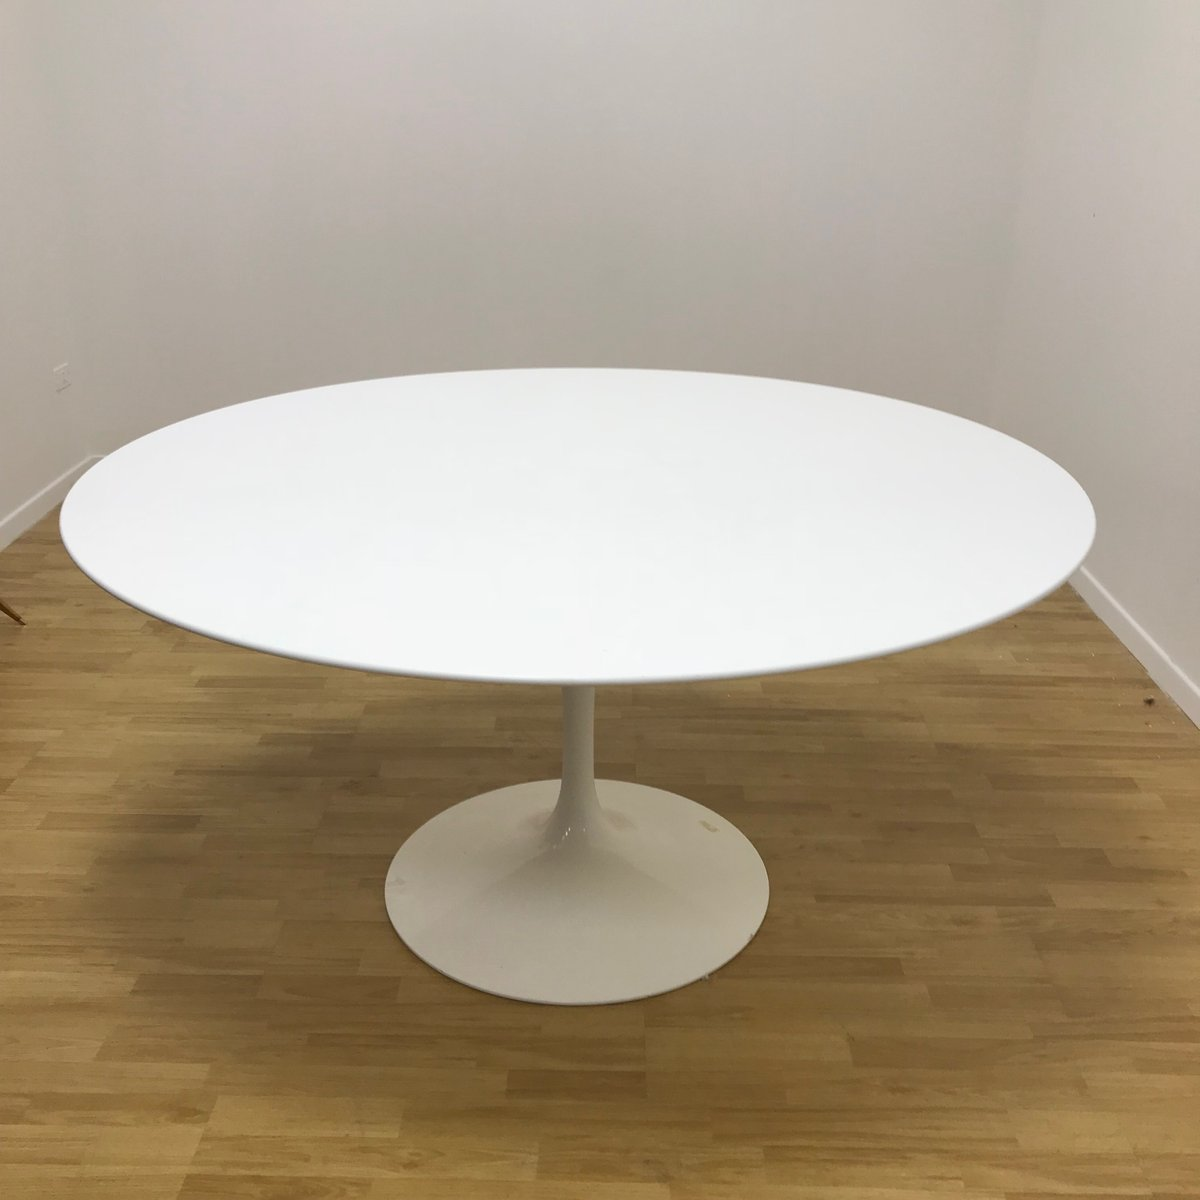 Knoll Saarinen Vintage Circular Tulip Table By Eero Saarinen For Knoll